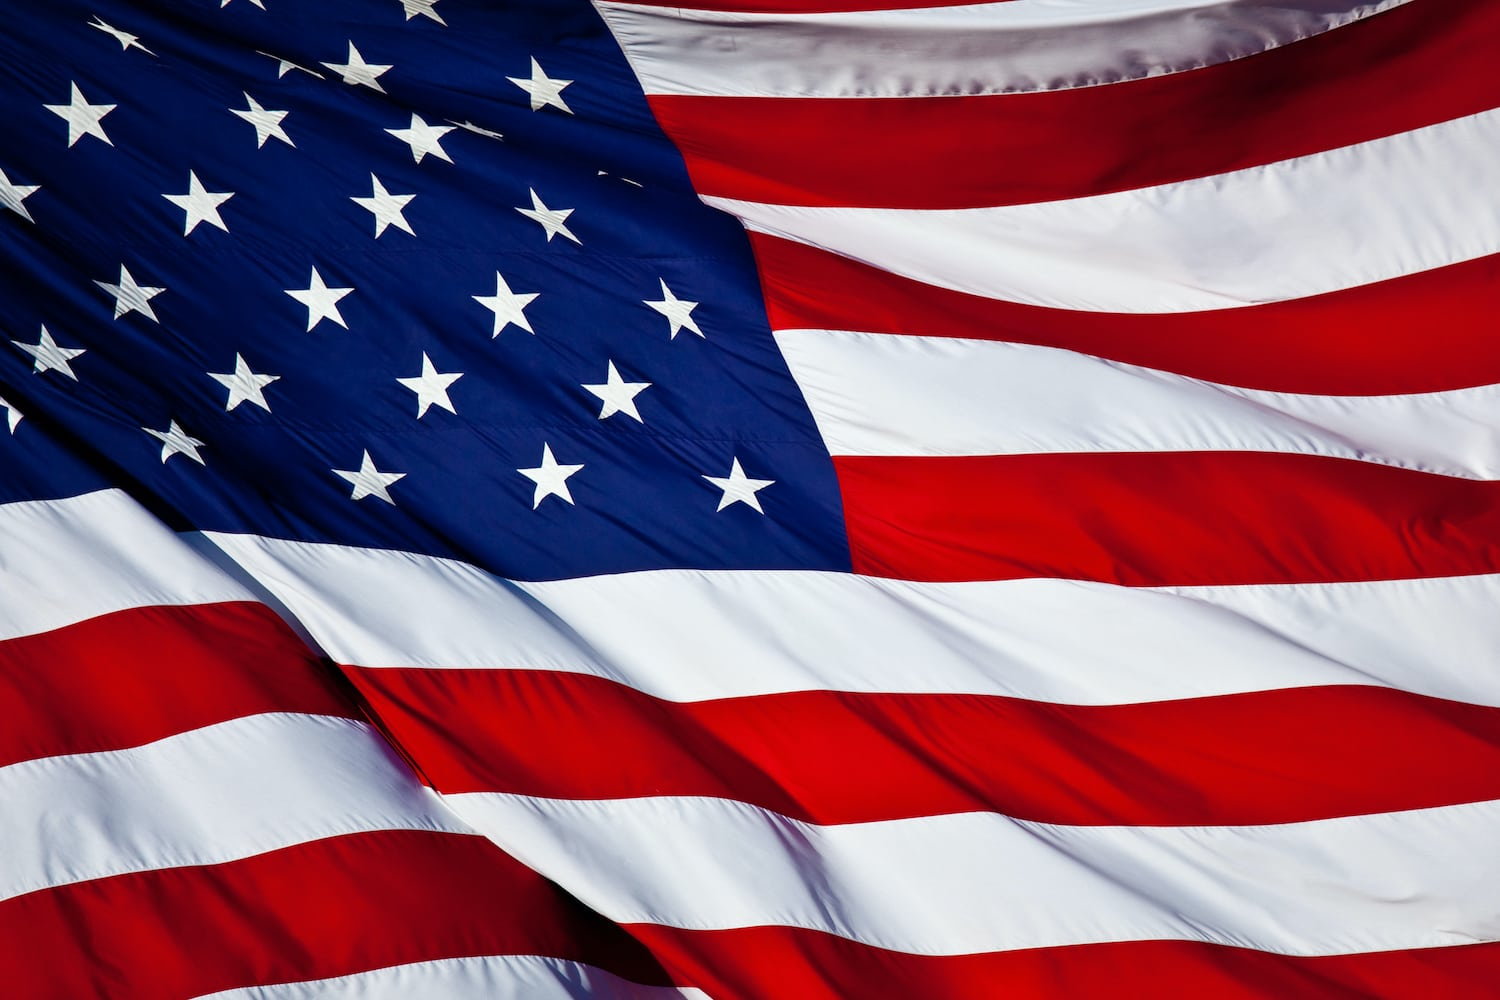 an American flag background waving in the wind